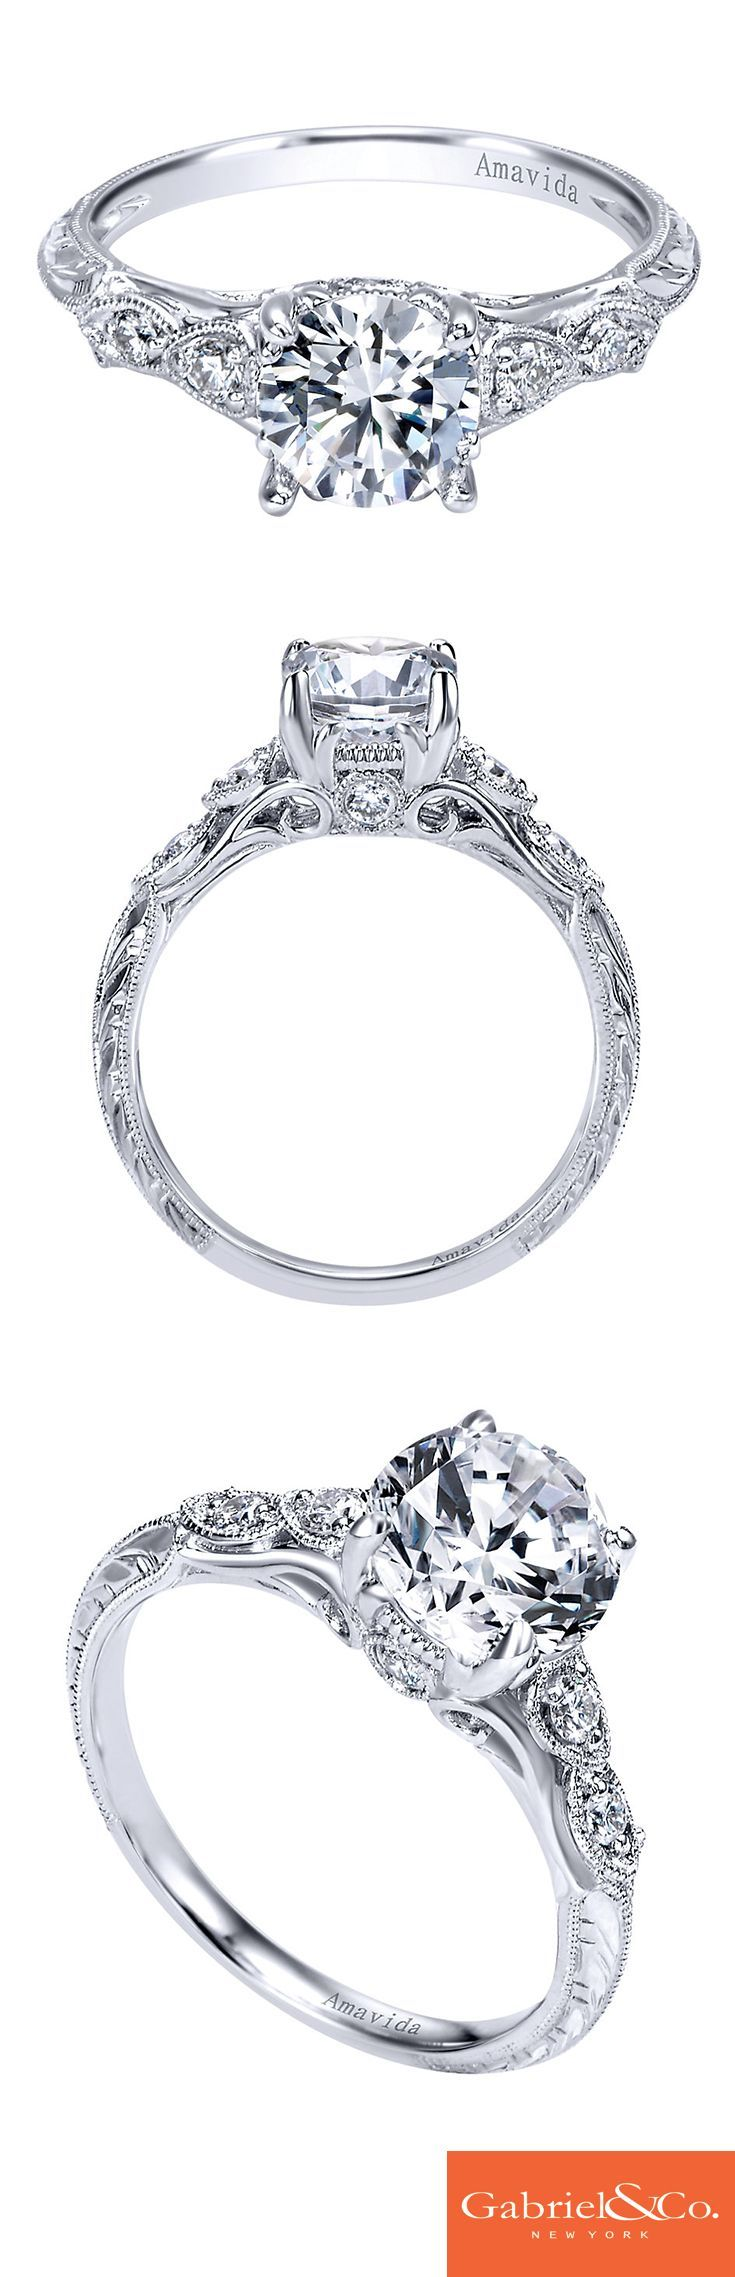 Express The Many Intricate And Beautiful Details Of Your Love In A Stunning Engagement  Ring